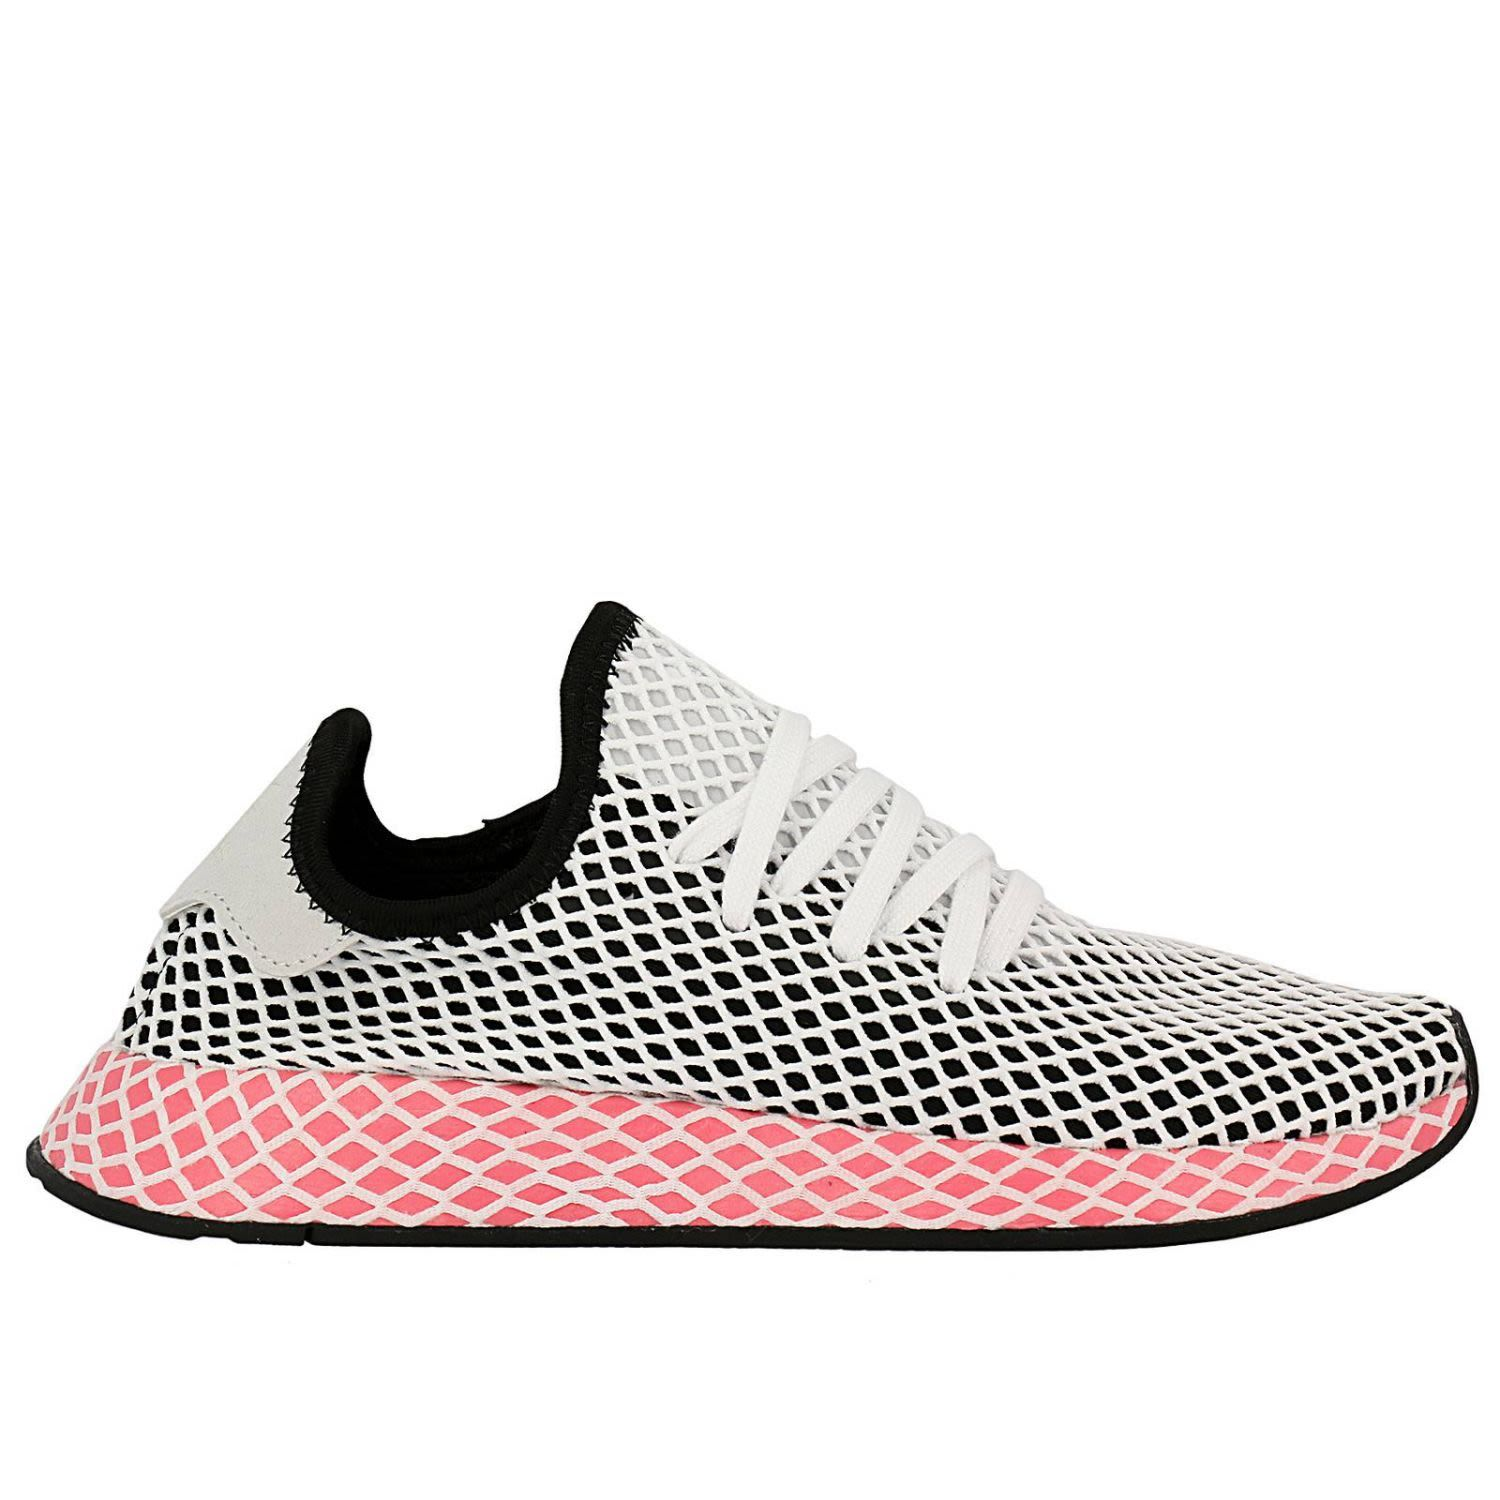 uk availability 37272 be2be ADIDAS ORIGINALS  Adidas Originals Sneakers Adidas Deerupt Runner W  Sneakers In Knit And Mesh Stretch Net Effect Shoes Sneakers ADIDAS  ORIGINALS